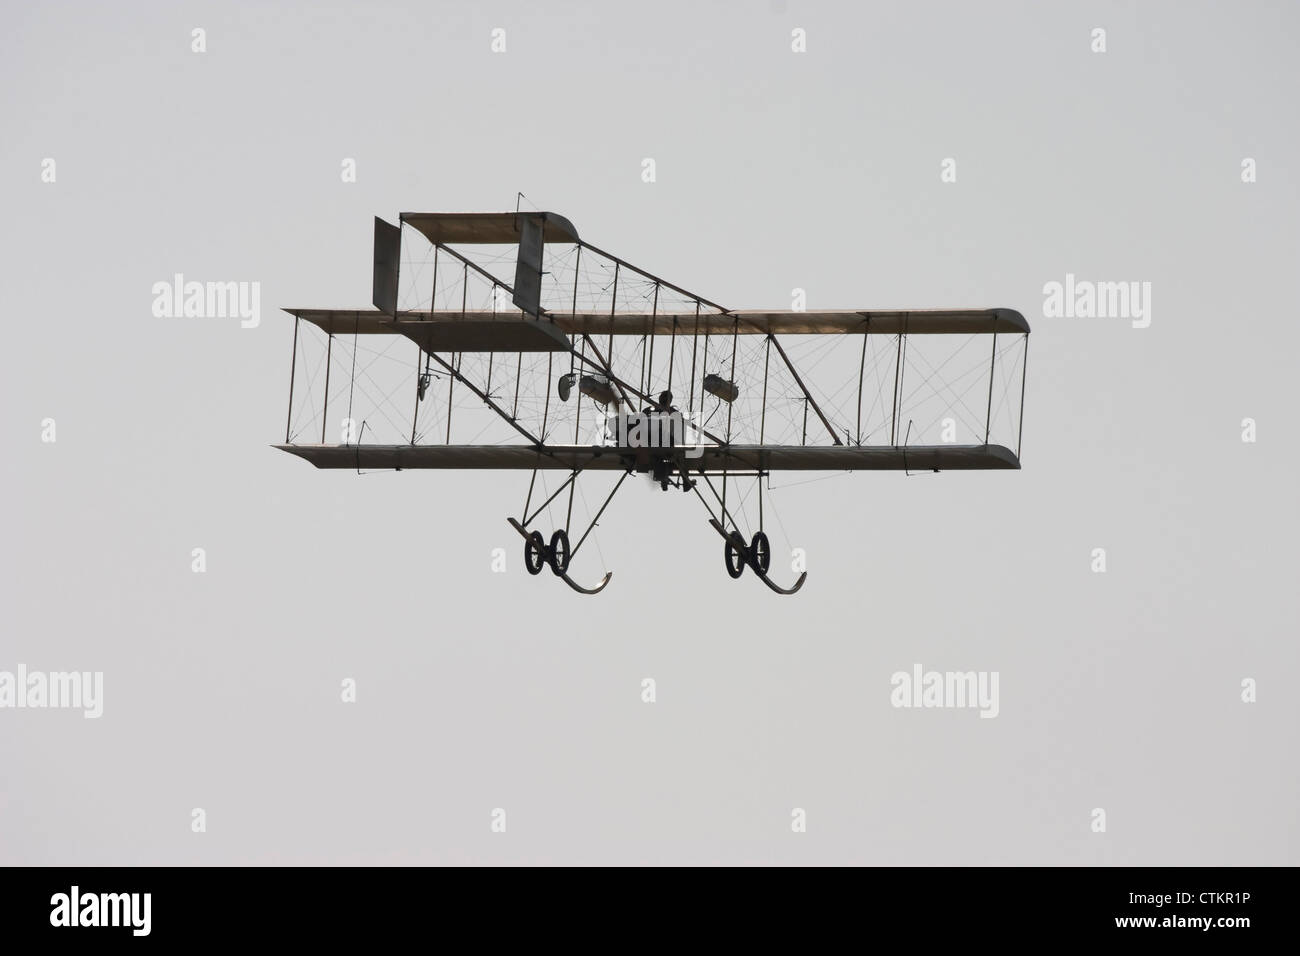 Farman Biplane Stock Photos and Images